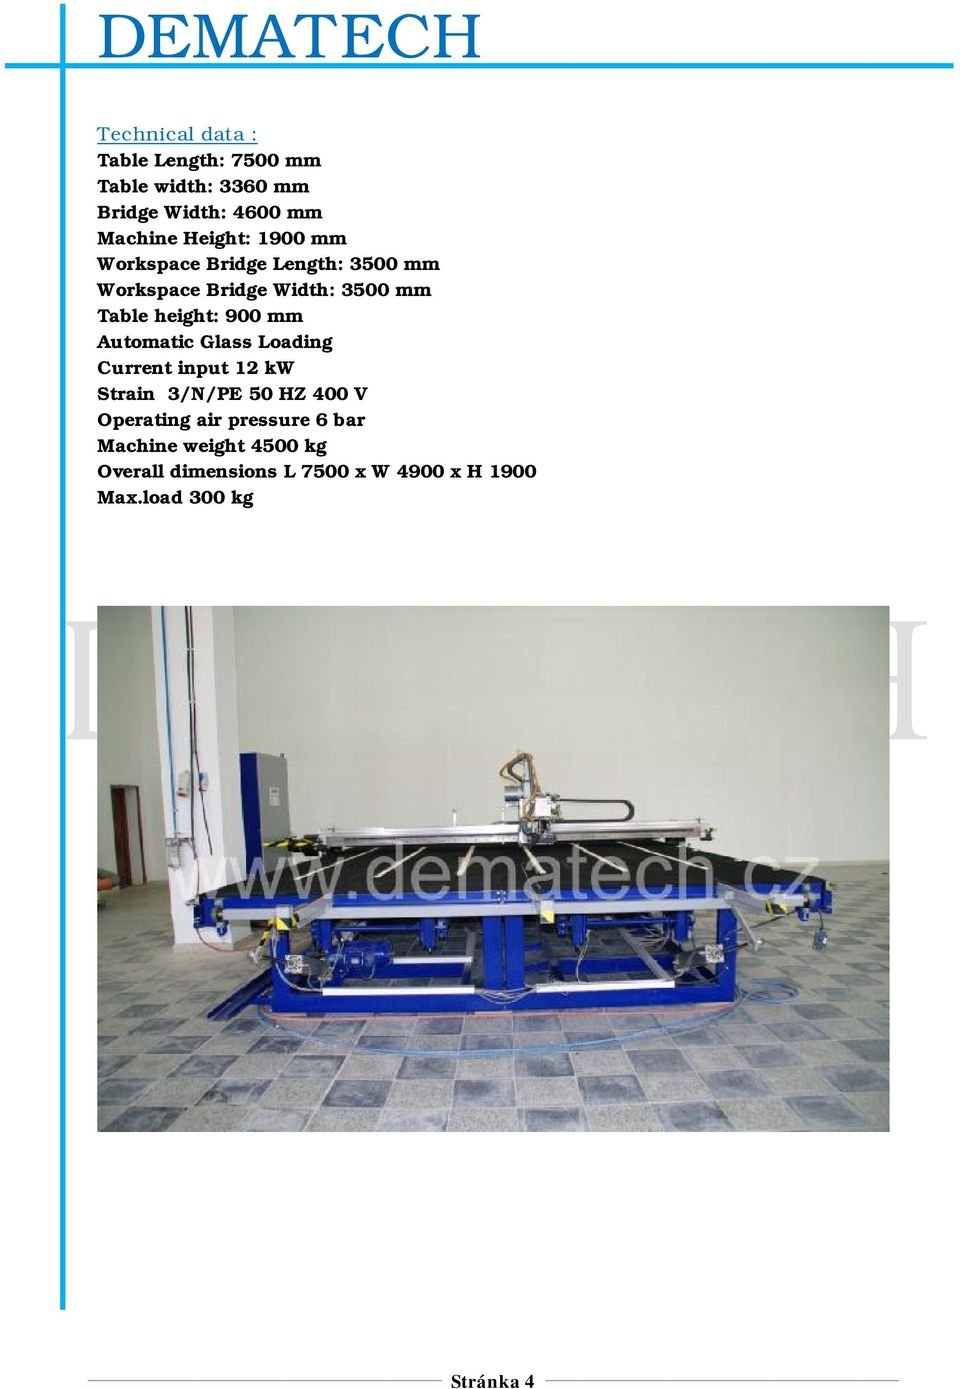 900 mm Automatic Glass Loading Current input 12 kw Strain 3/N/PE 50 HZ 400 V Operating air